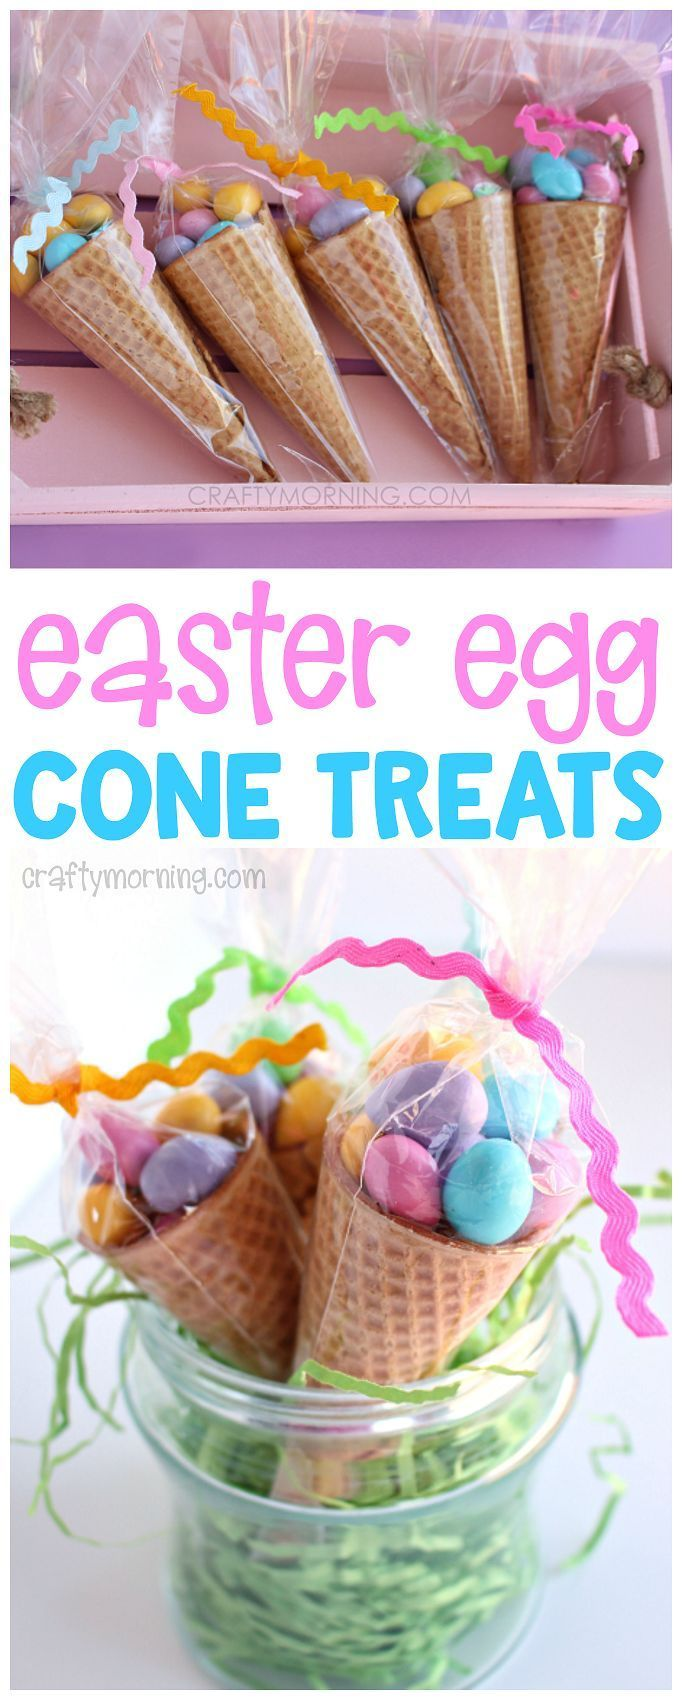 These edible easter egg cone treats are adorable cute little these edible easter egg cone treats are adorable cute little easter gift idea for the kids hide in their easter egg basket negle Gallery